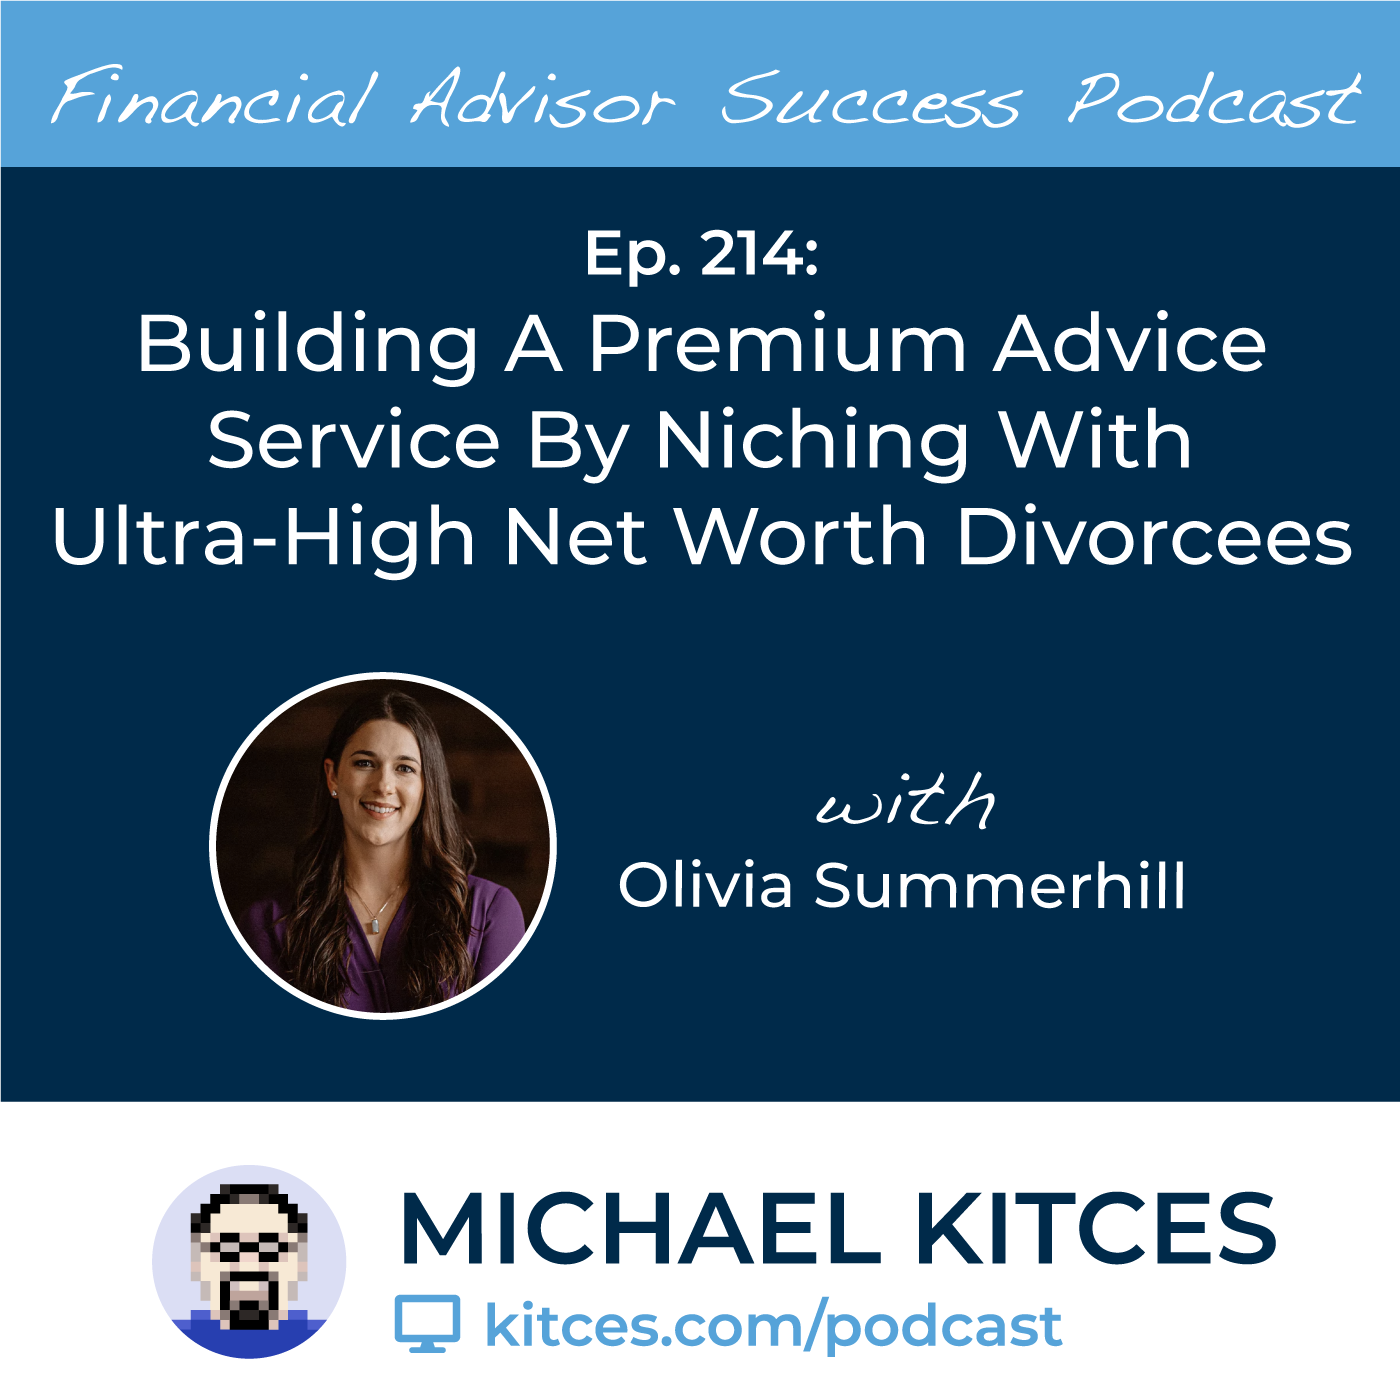 Ep 214: Building A Premium Advice Service By Niching With Ultra-High Net Worth Divorcees with Olivia Summerhill